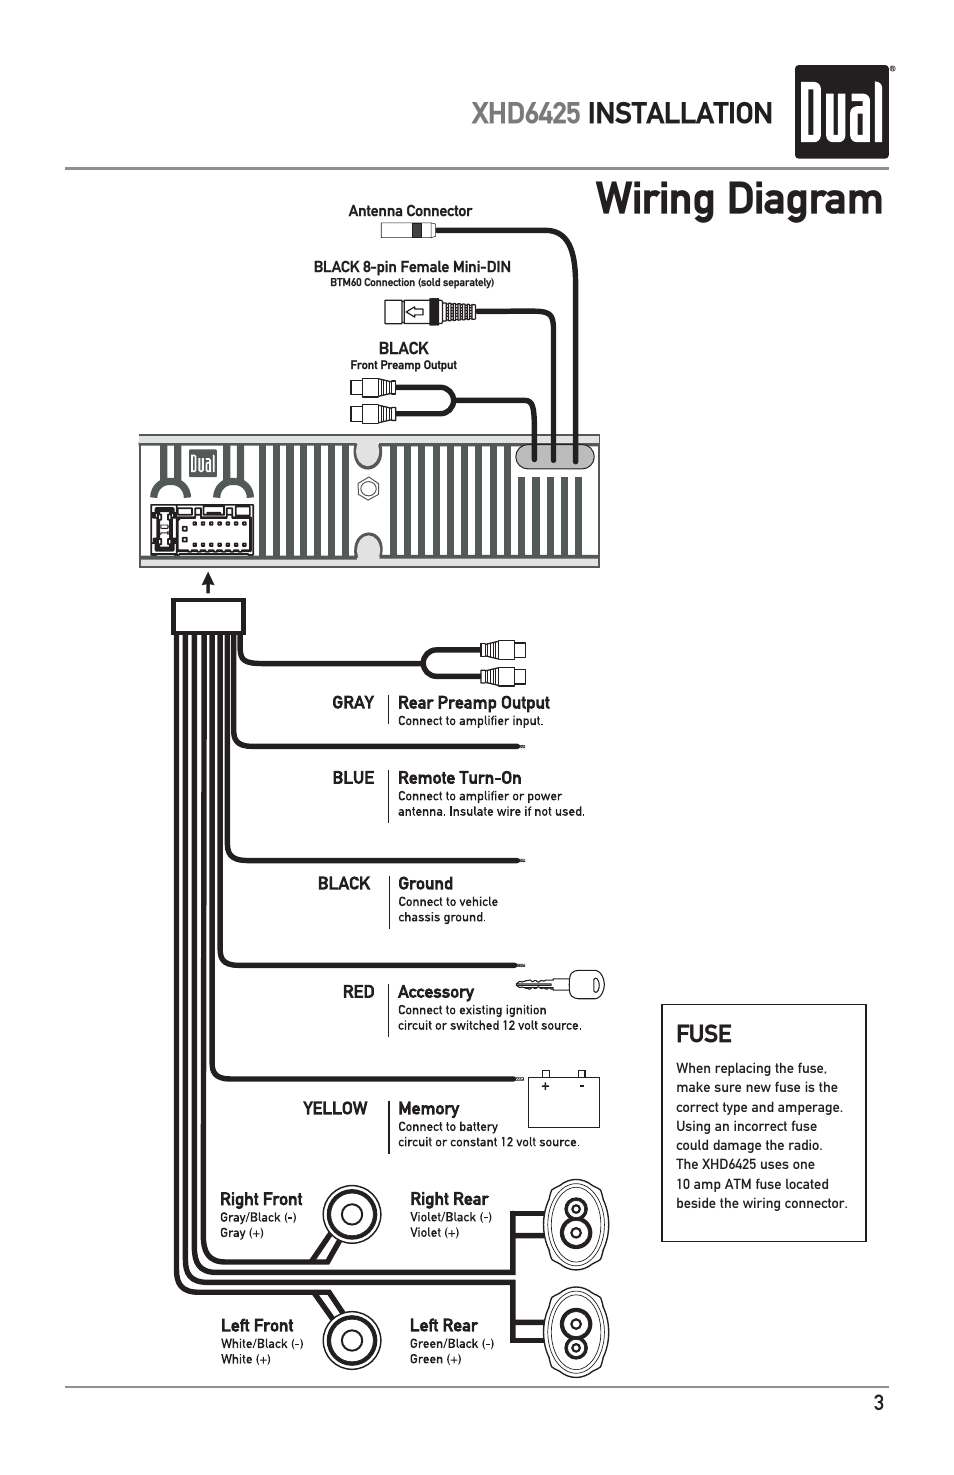 medium resolution of 5 pin din plug wiring diagram with wiring diagram xhd6425 installation dual electronics xhd6425 user manual page 3 28